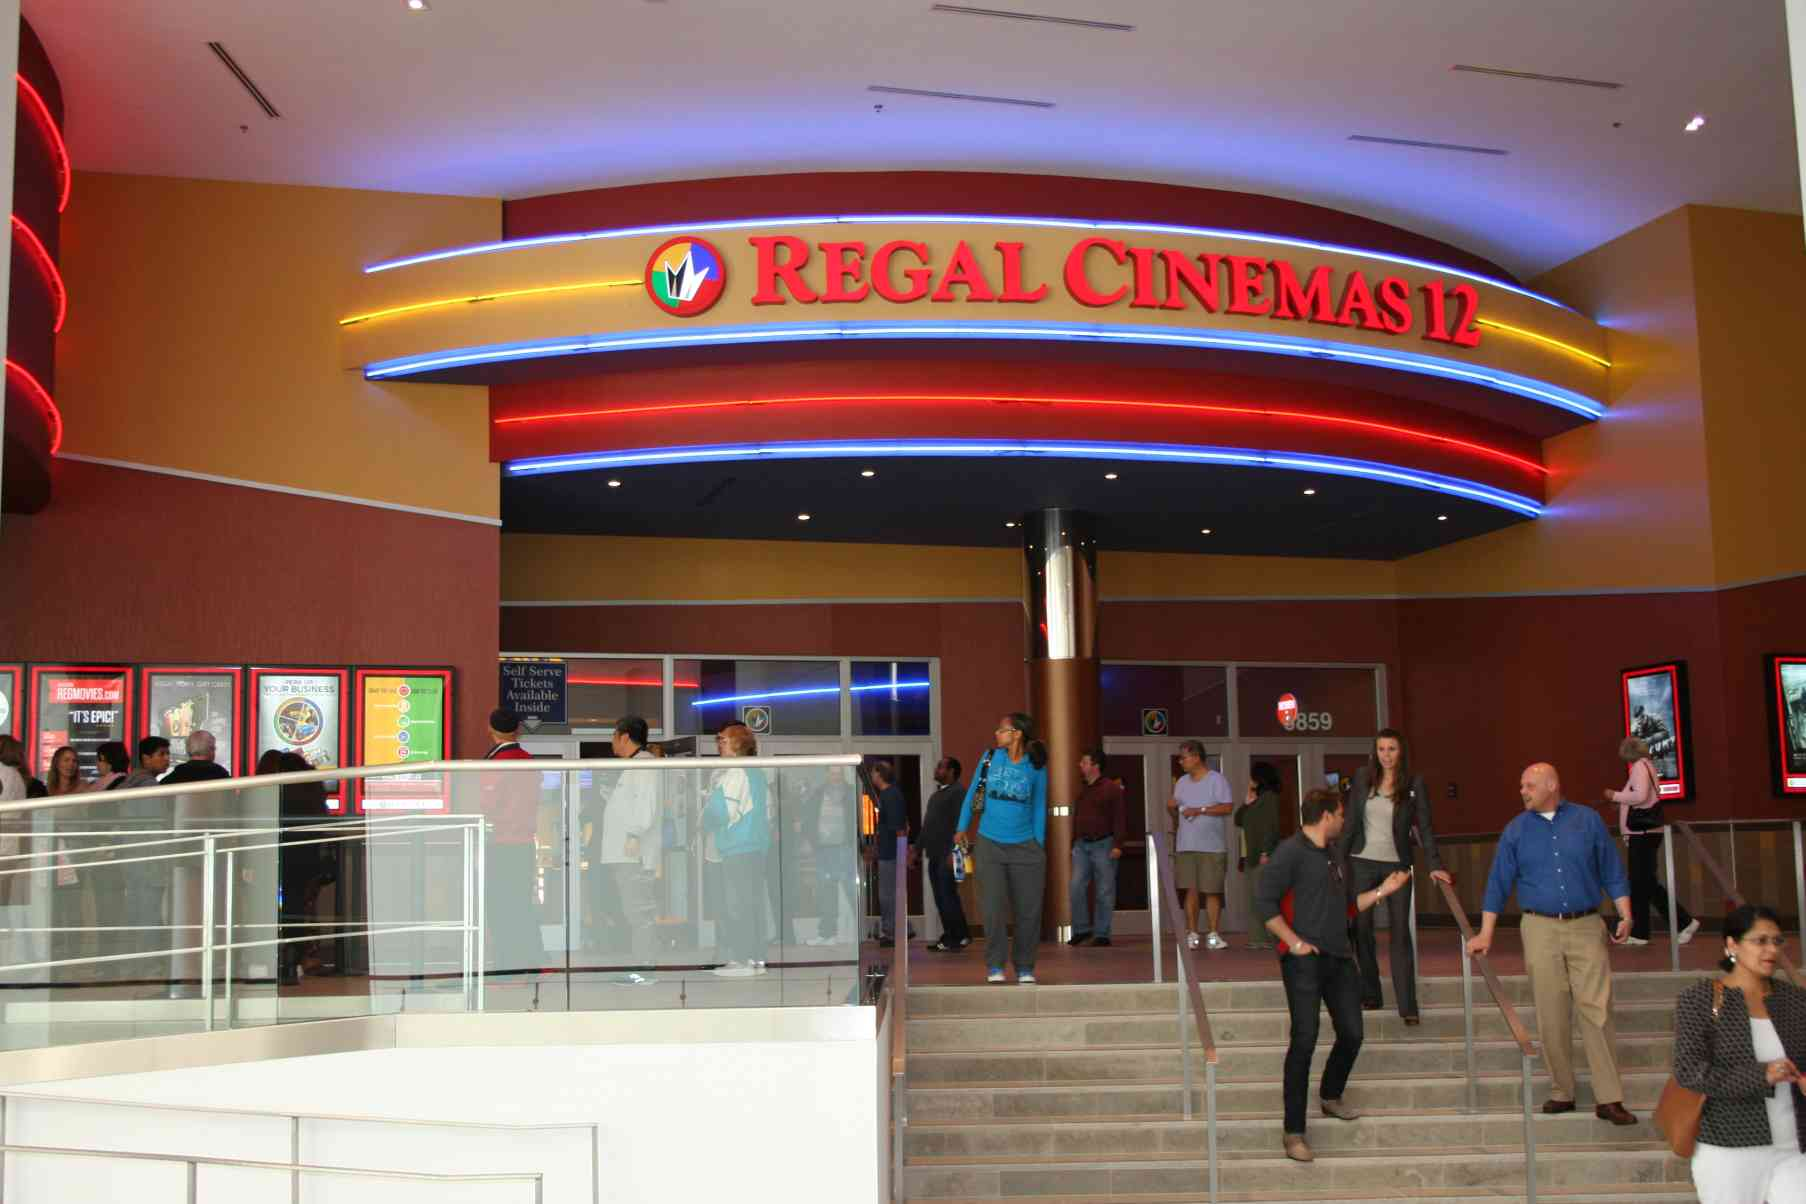 Explore Regal Cinemas' movie concessions, concession coupons and concession discounts for a sweeter movie experience. Find concession coupons, offers & promotions for your next trip to the movies.